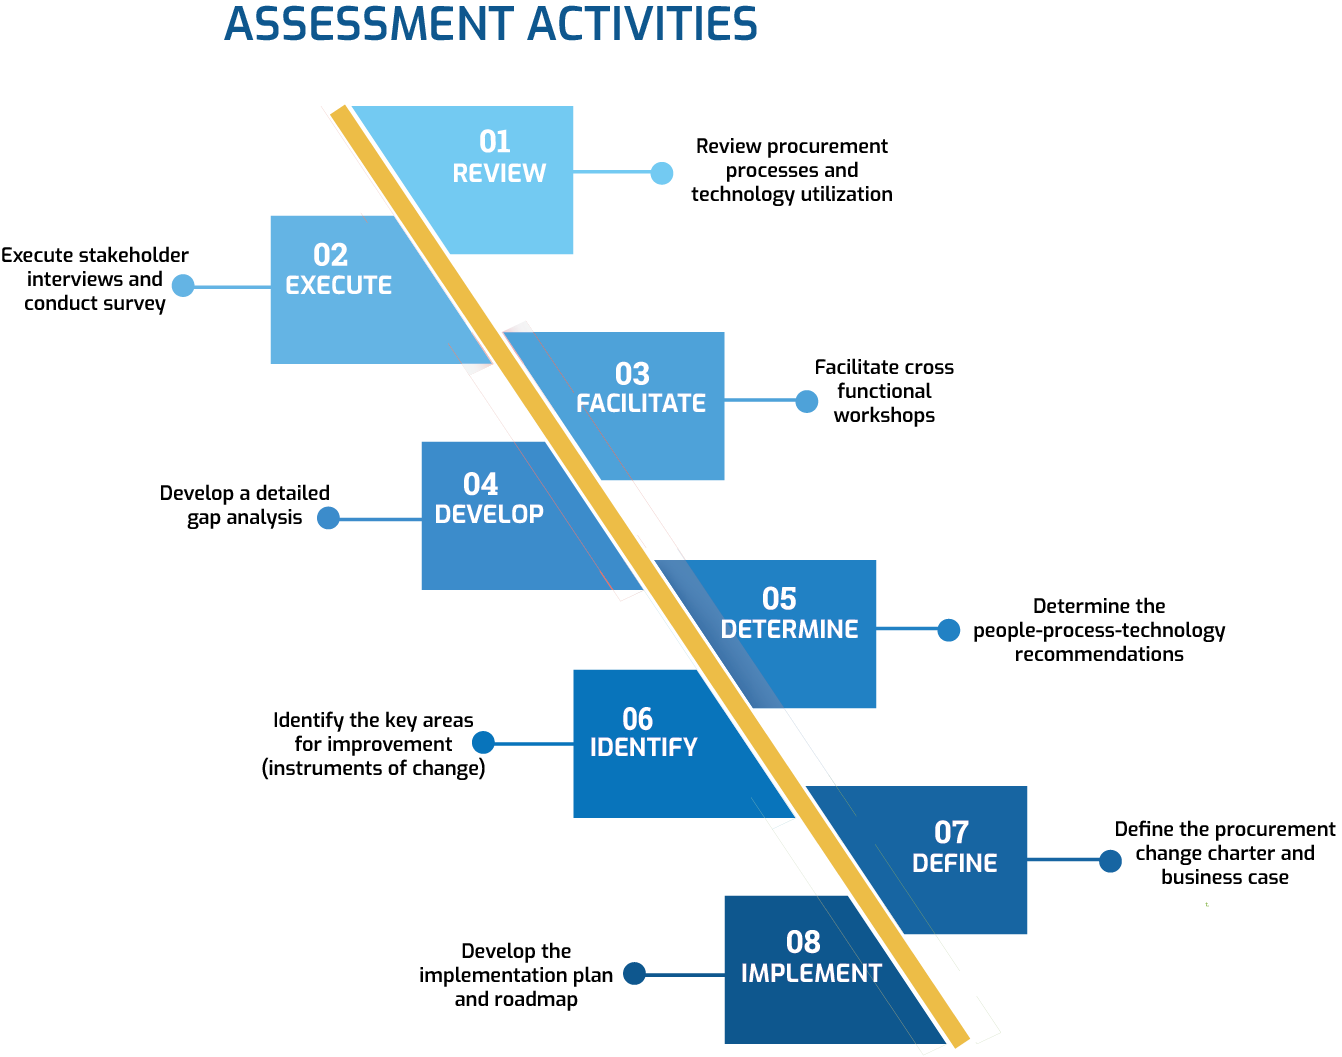 assessment-activities